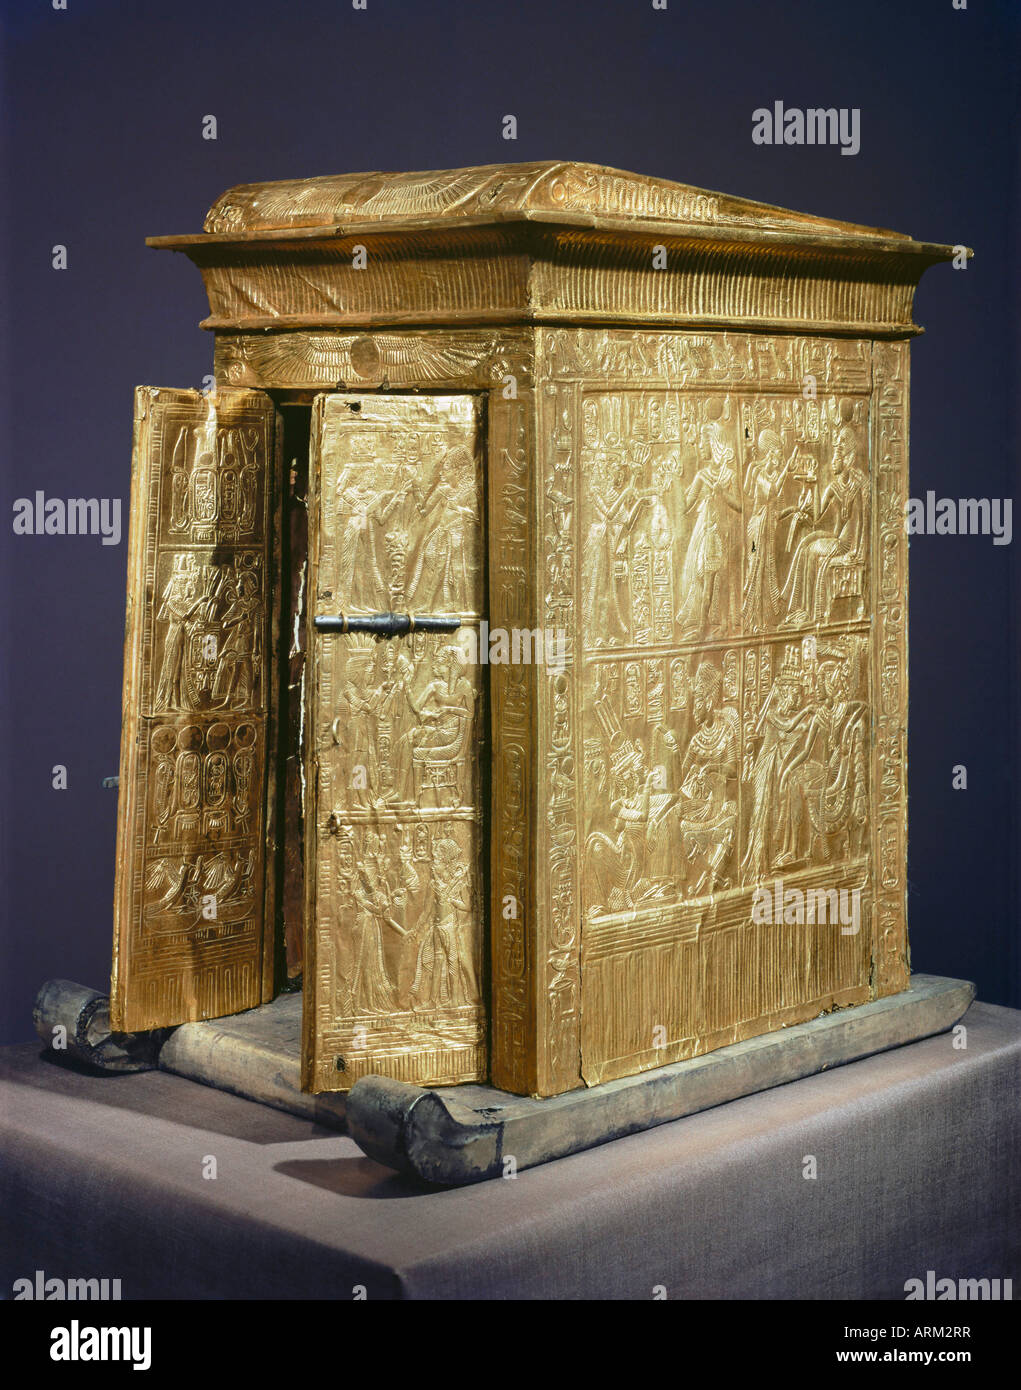 The gilt shrine which originally contained the statuettes of the royal couple in the tomb of the pharaoh Tutankhamun - Stock Image